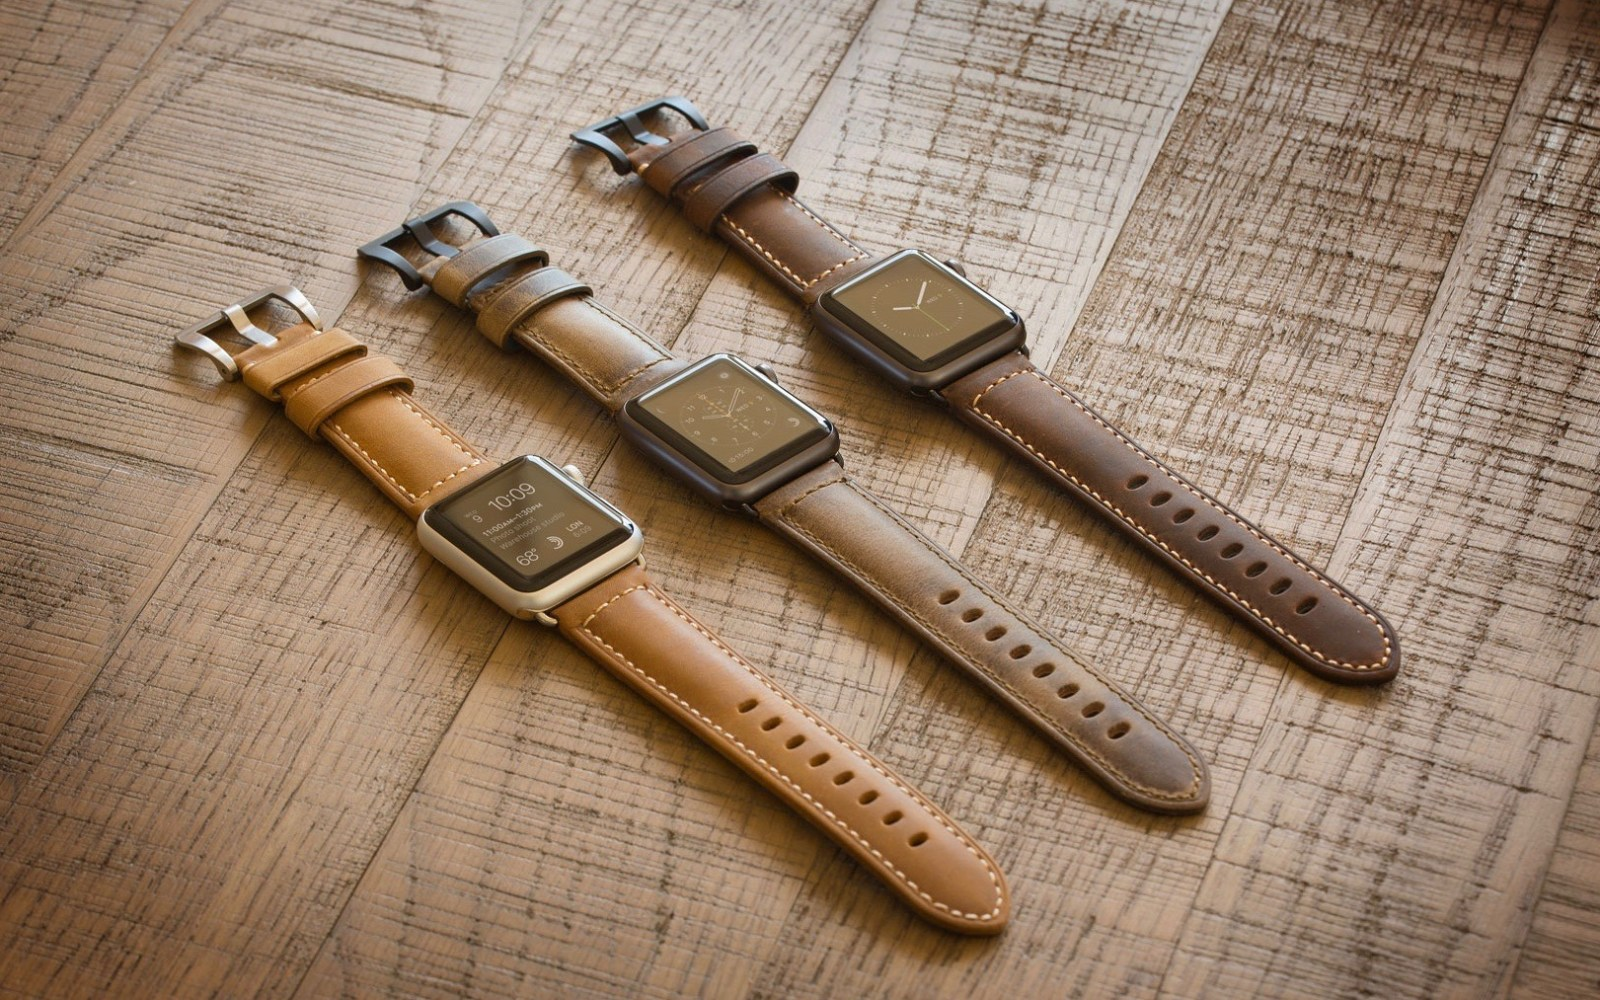 Nomad expands its Apple Watch band lineup with two new rugged Italian leather Straps